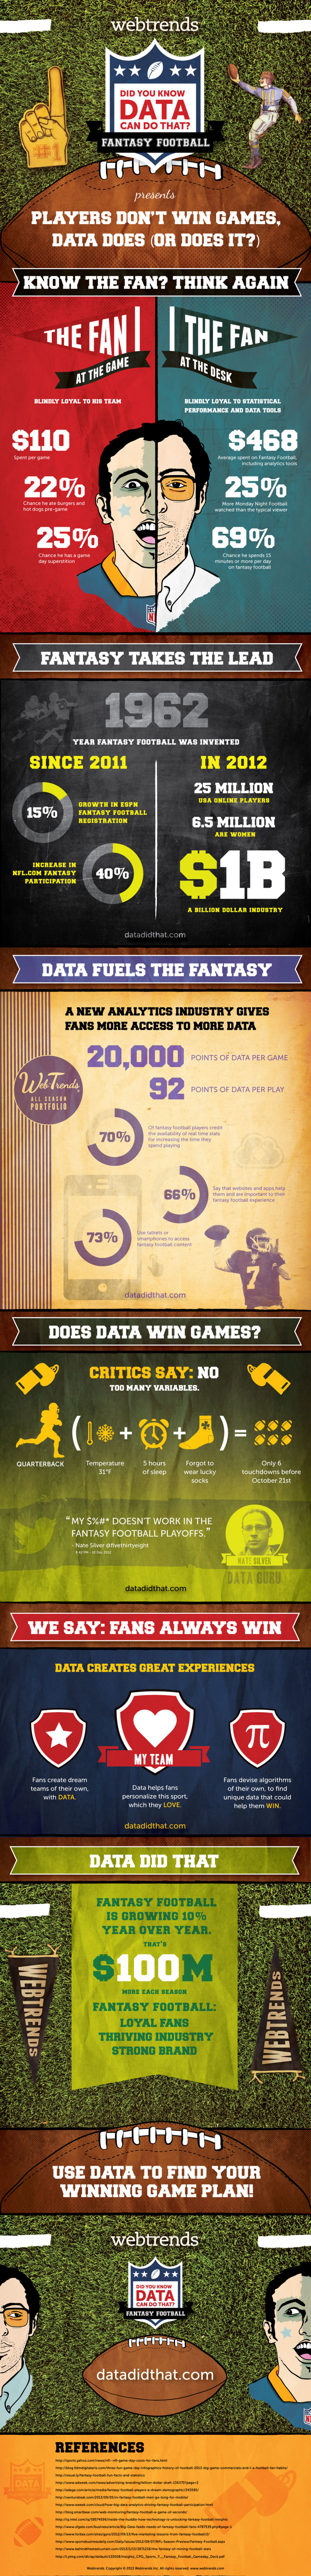 Fantasy Football: Players Don't Win Games, Data Does (Or Does It?) Infographic